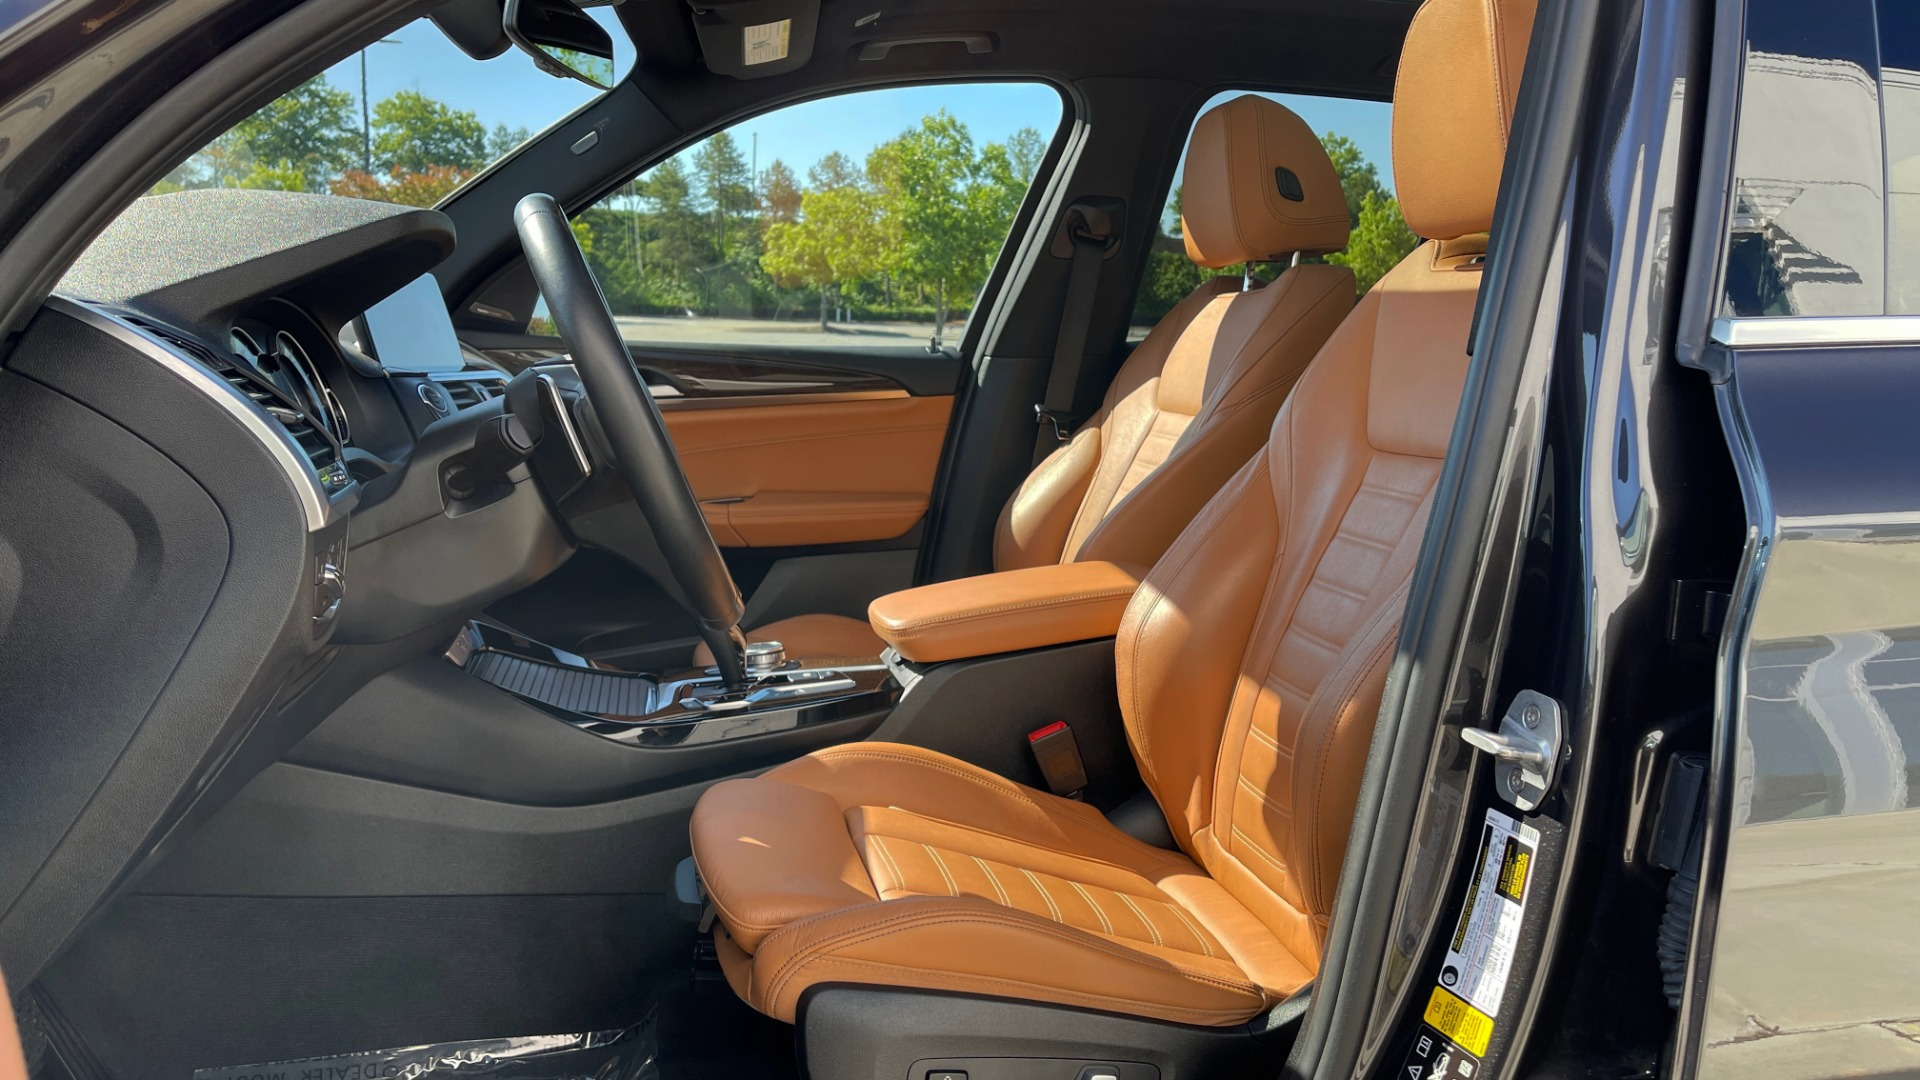 Used 2018 BMW X3 XDRIVE30I PREMIUM / NAV / DRVR ASST PLUS / CONV PKG / SUNROOF / REARVIEW for sale $33,795 at Formula Imports in Charlotte NC 28227 58